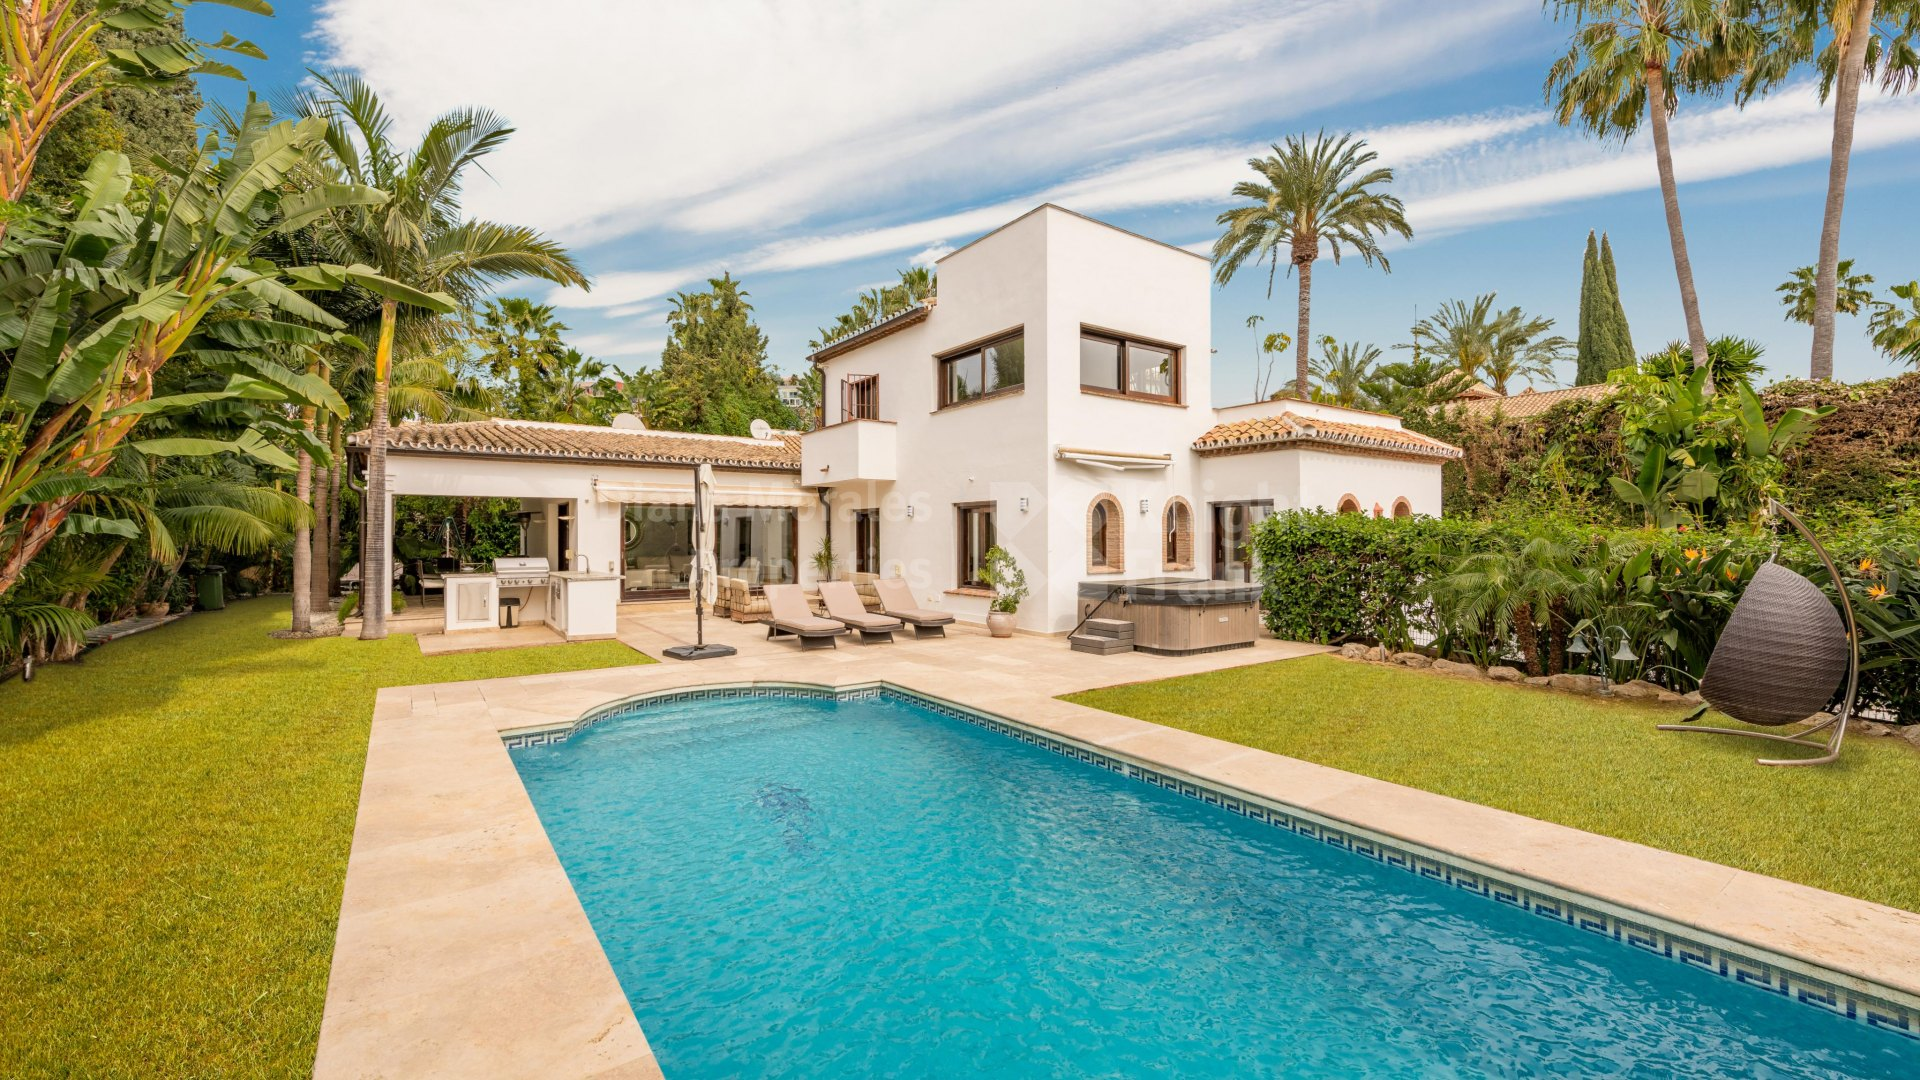 Las Brisas, Villa close to golf